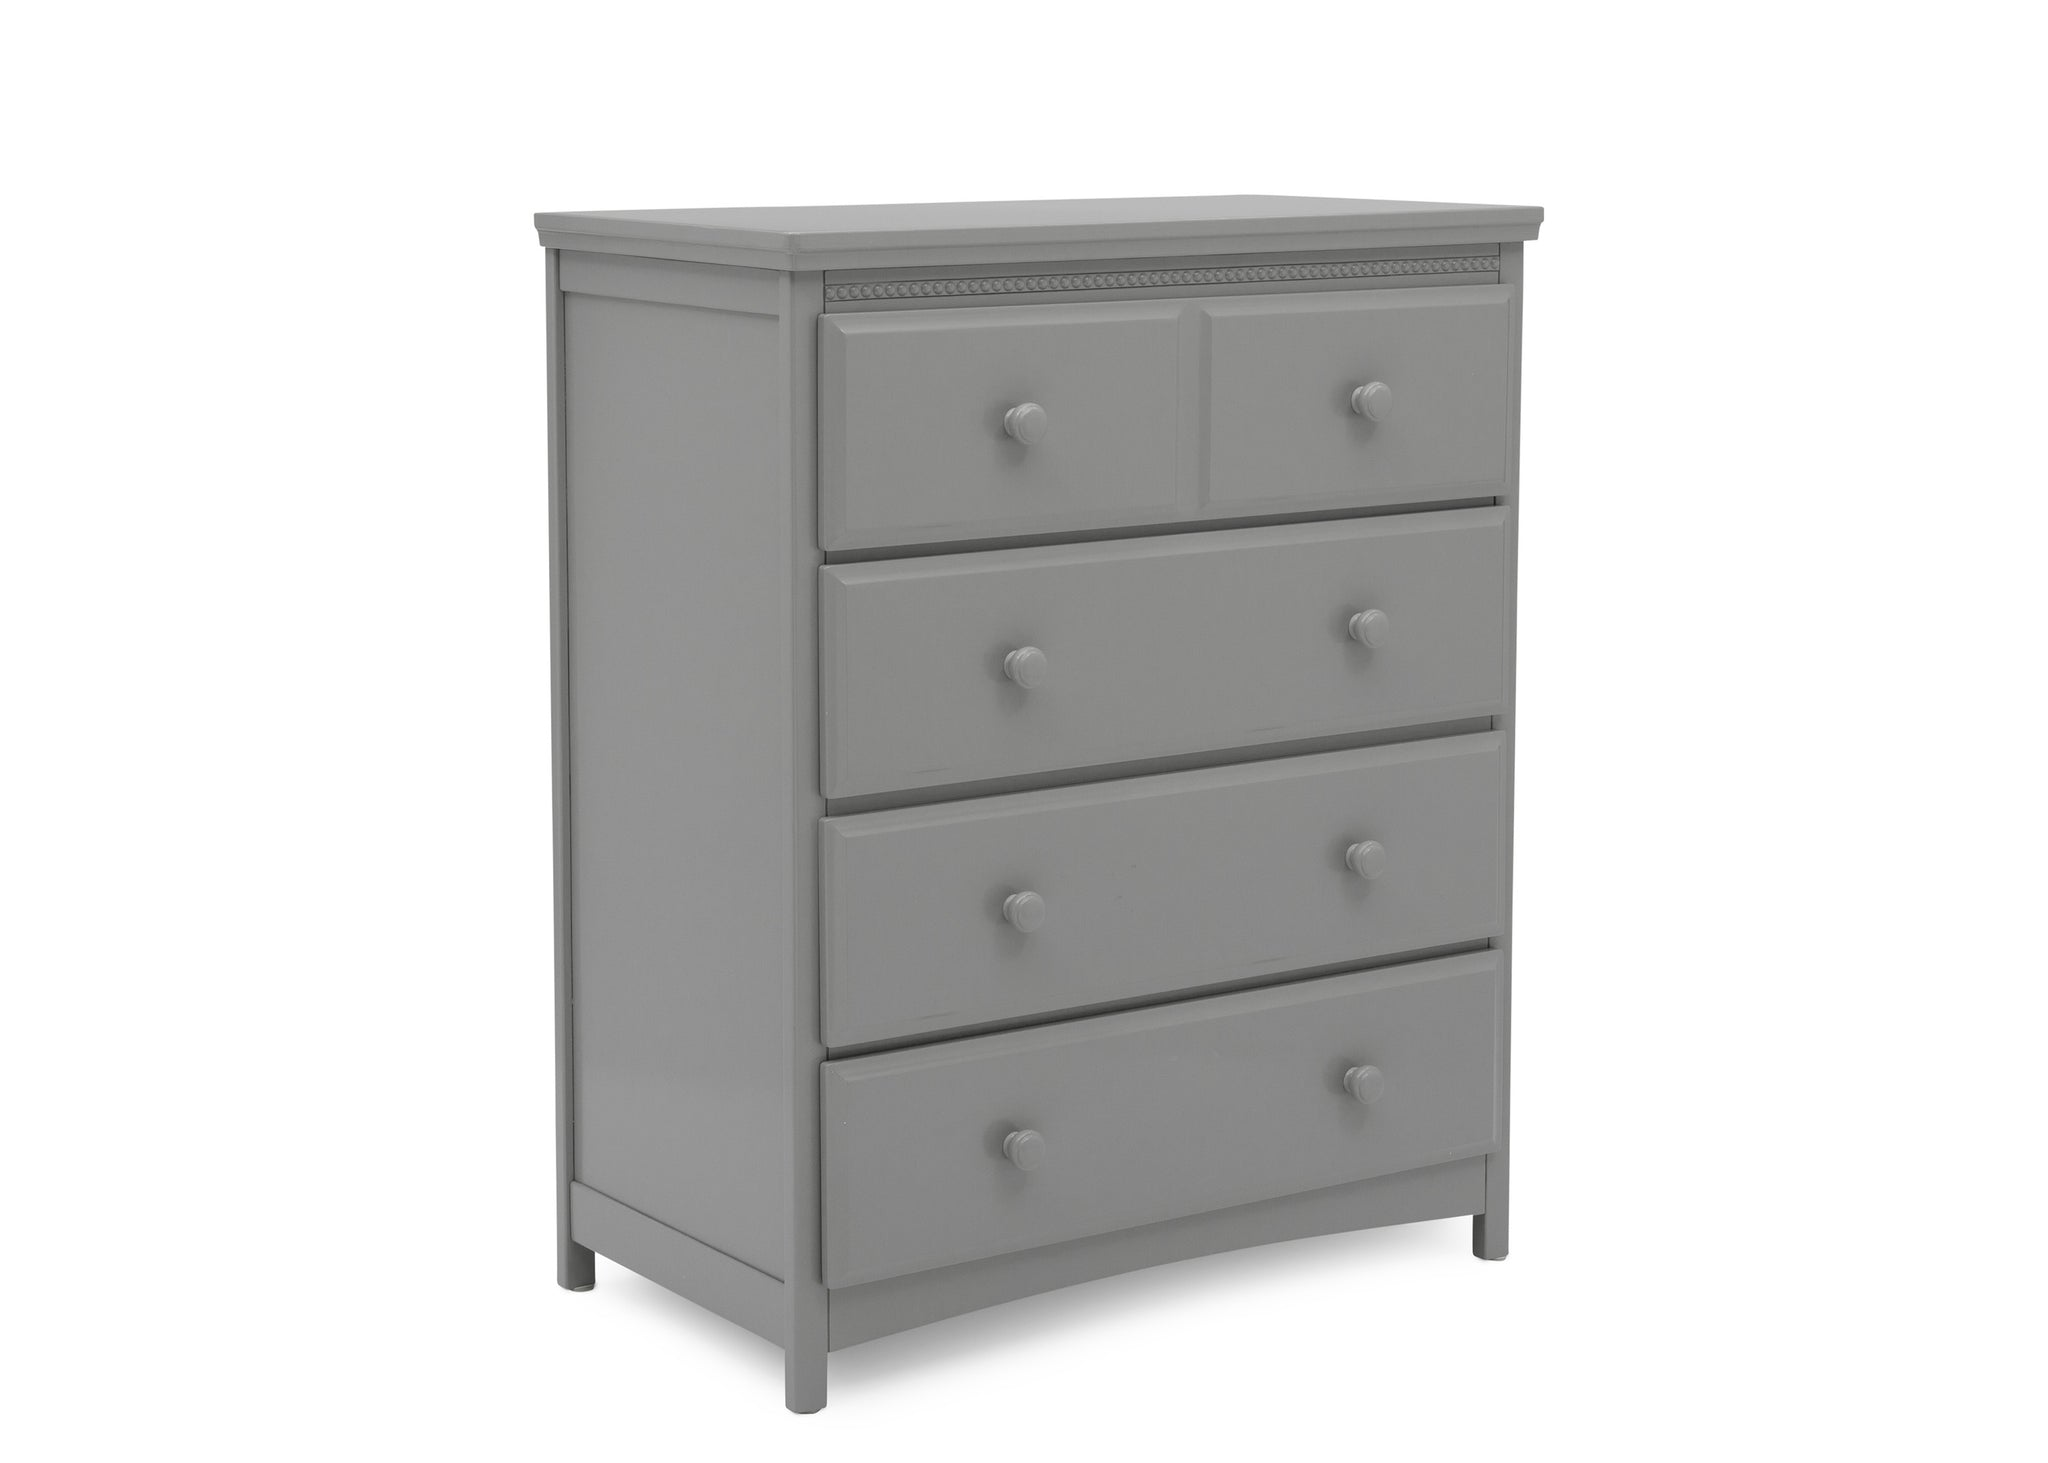 Delta Children Grey (026) Emerson 4 Drawer Chest, Right Silo View